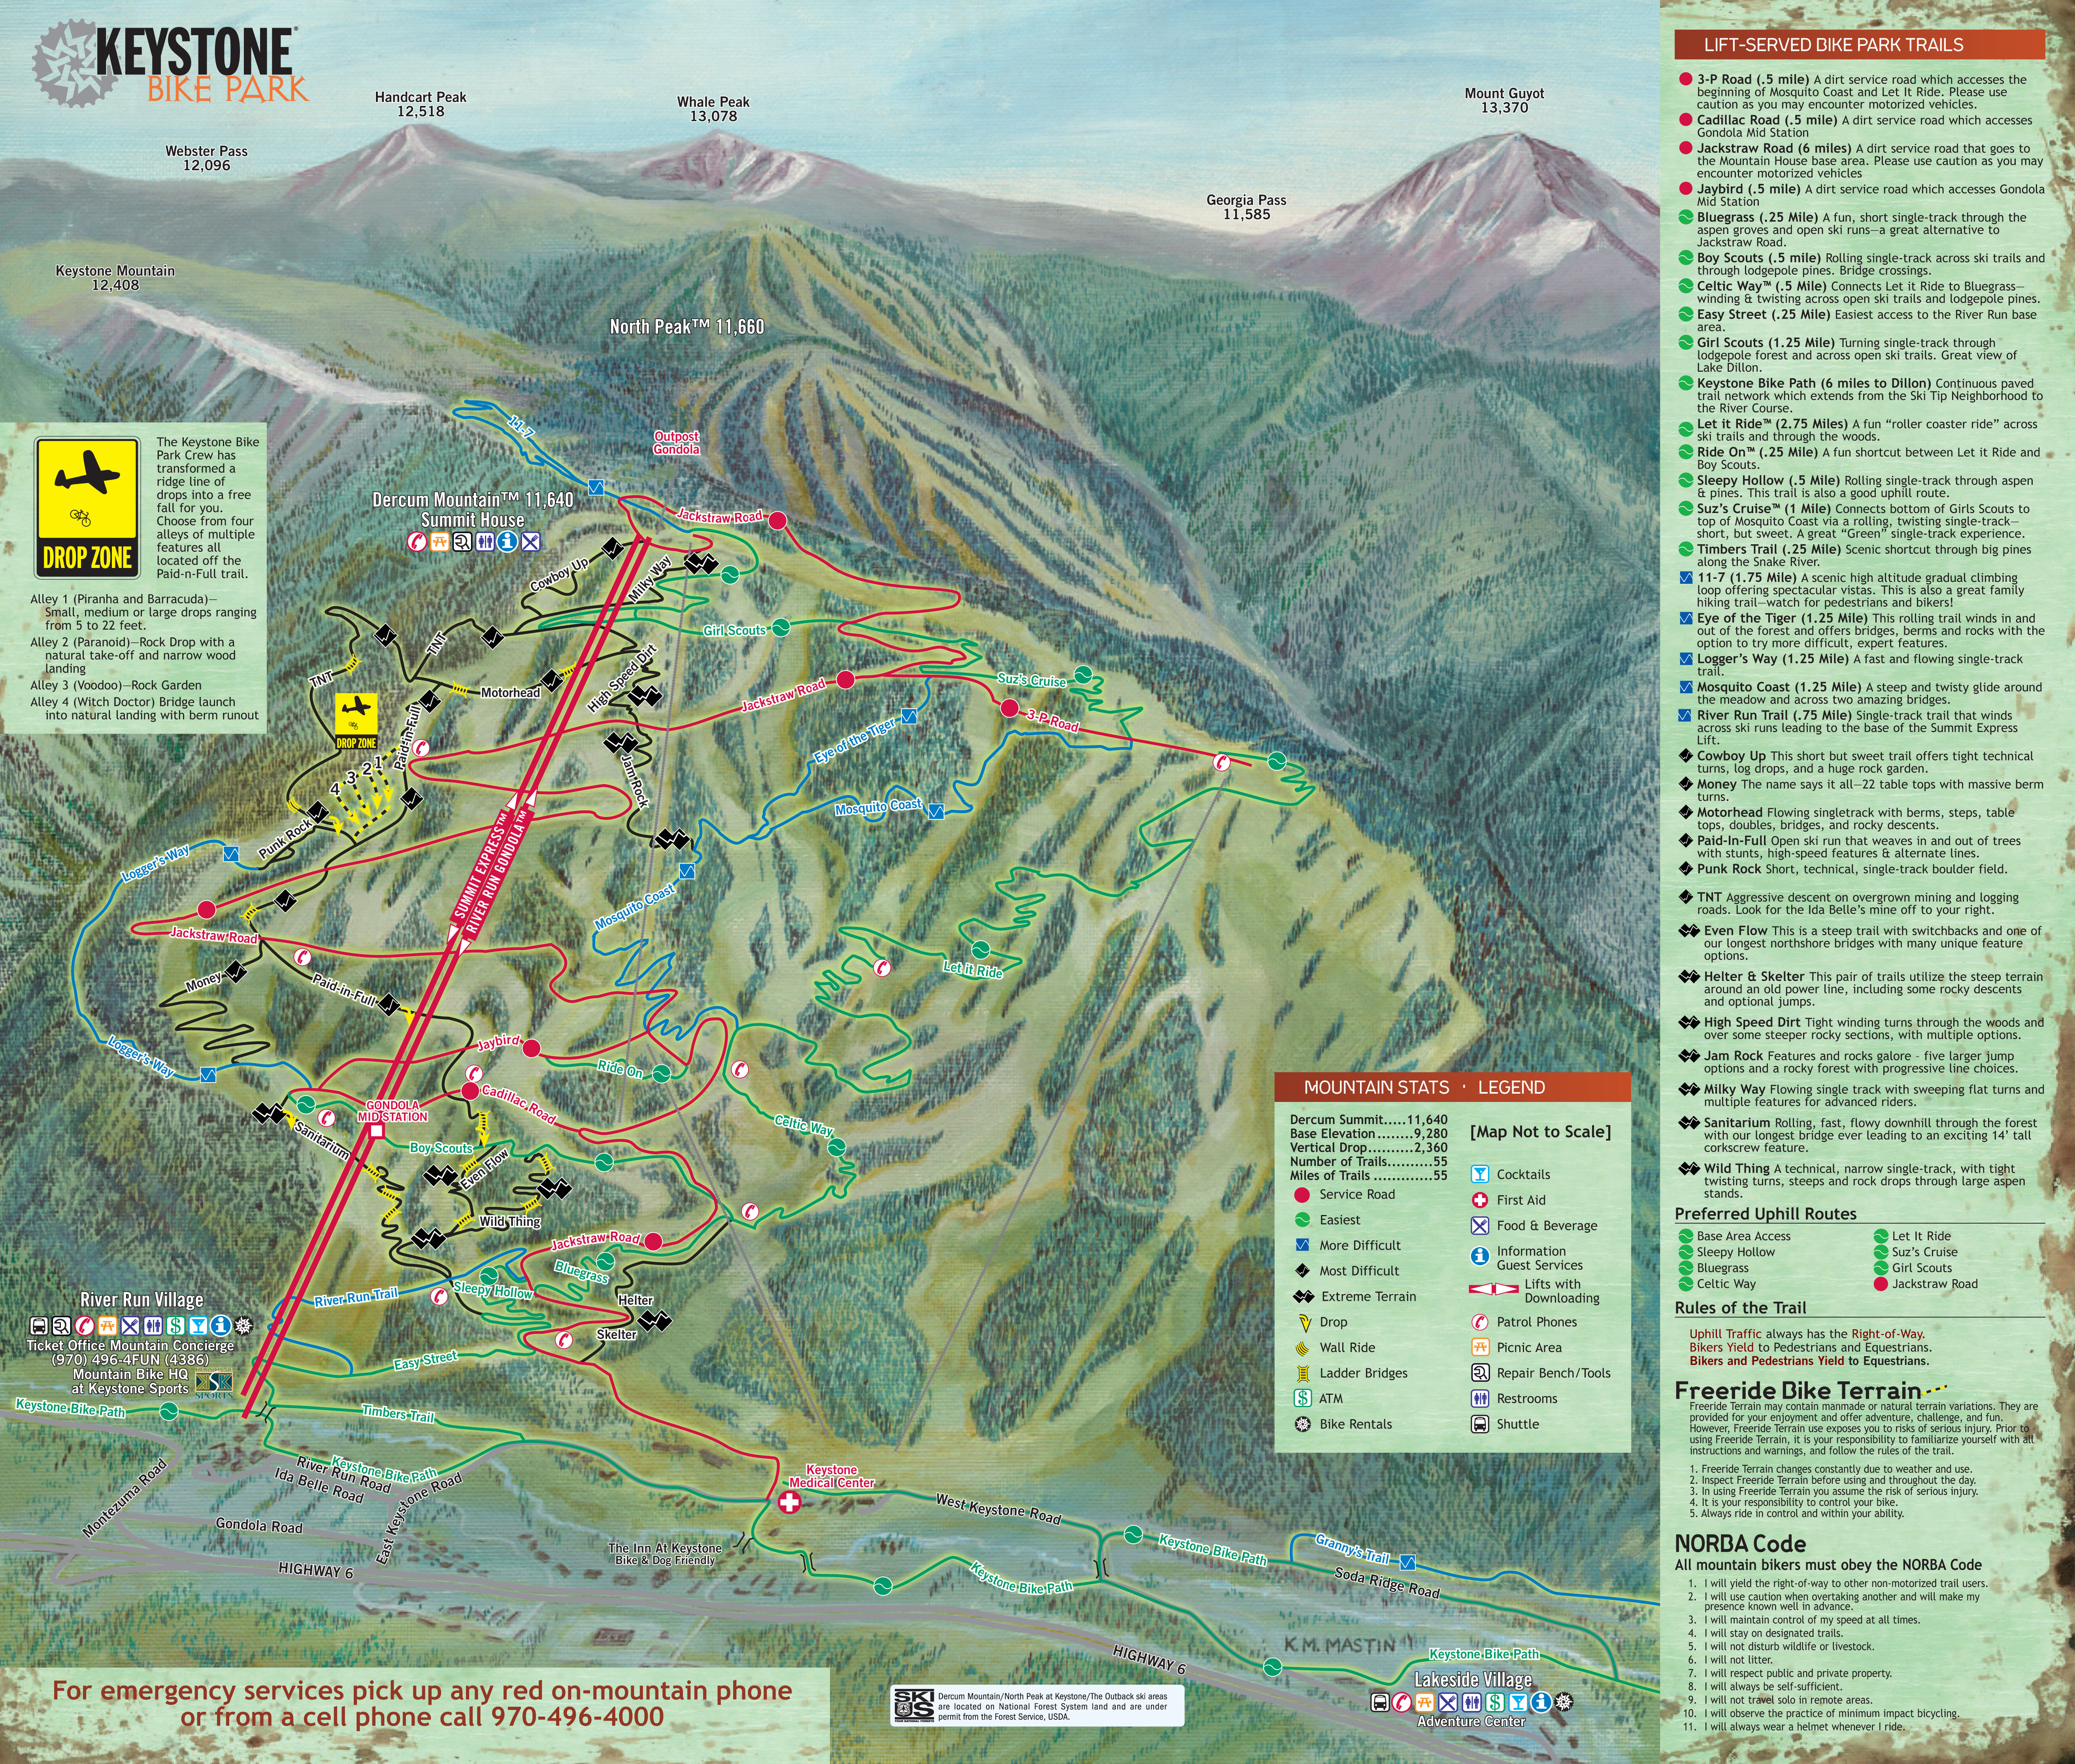 Keystone Resort - SkiMap.org on weston county map, breckenridge map, vail resort map, lake magdalene map, alban hills map, the broadmoor map, camano map, ski beech map, royal palm map, yellow creek map, mount auburn map, river's edge map, copper mountain map, indiana limestone map, thonotosassa map, black hills map, crazy horse memorial map, christie mountain map, cheyenne crossing map, mount rushmore national memorial map,